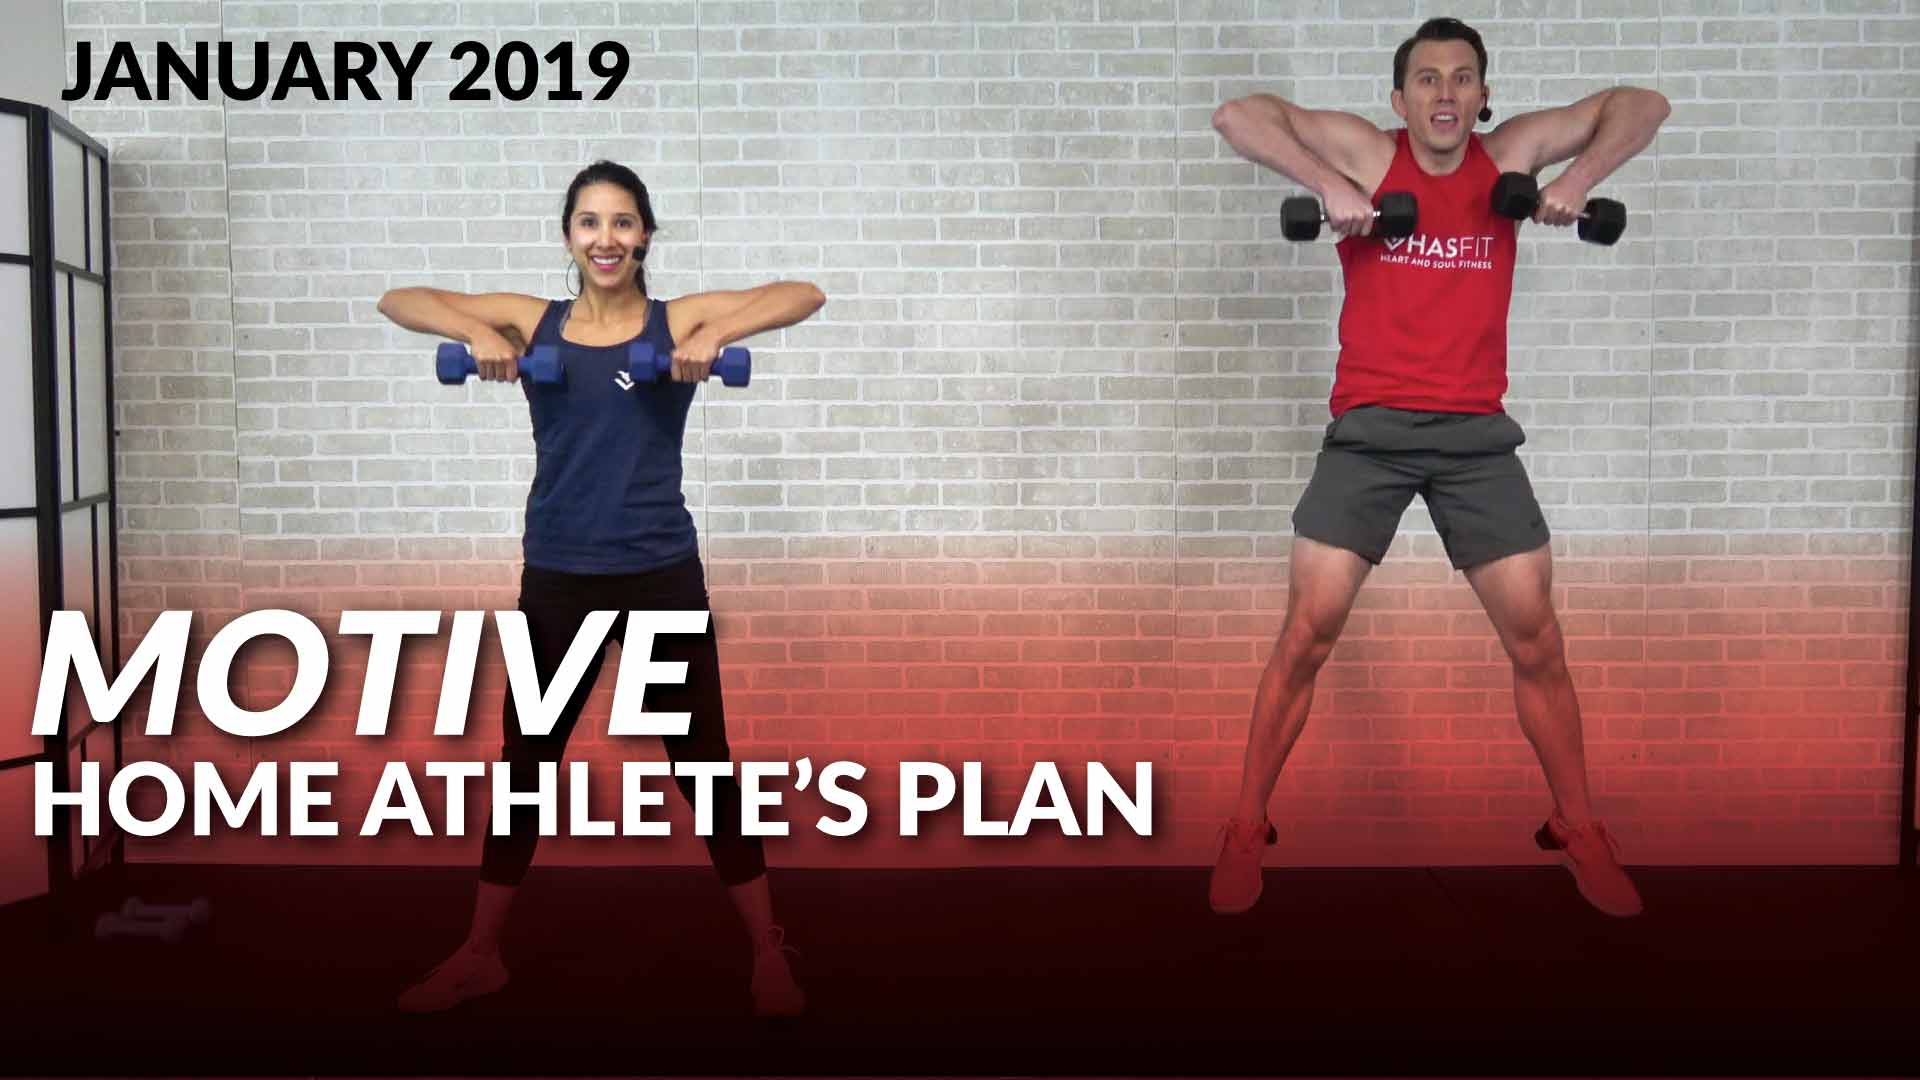 motive the home athlete s plan hasfit free full length workout